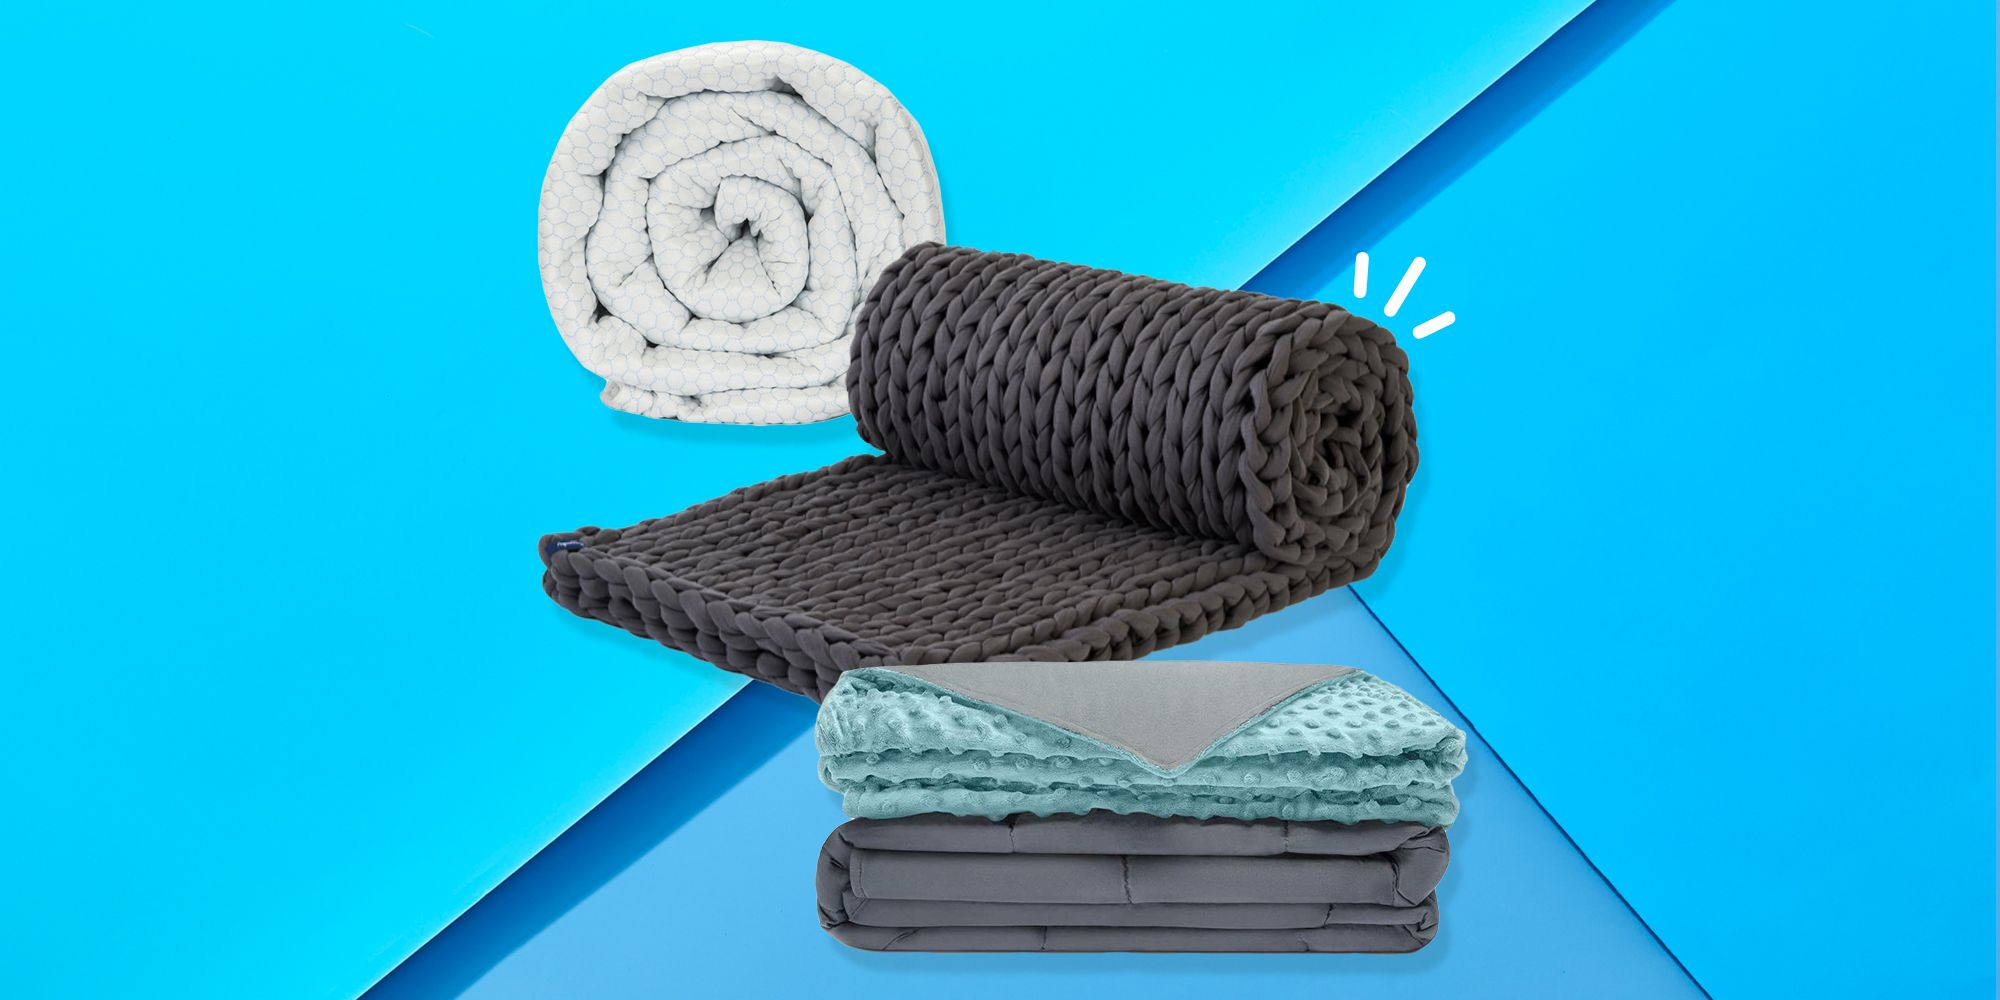 13 Best Weighted Blankets To Sleep Better And Ease Anxiety, According To Experts And Online Reviews